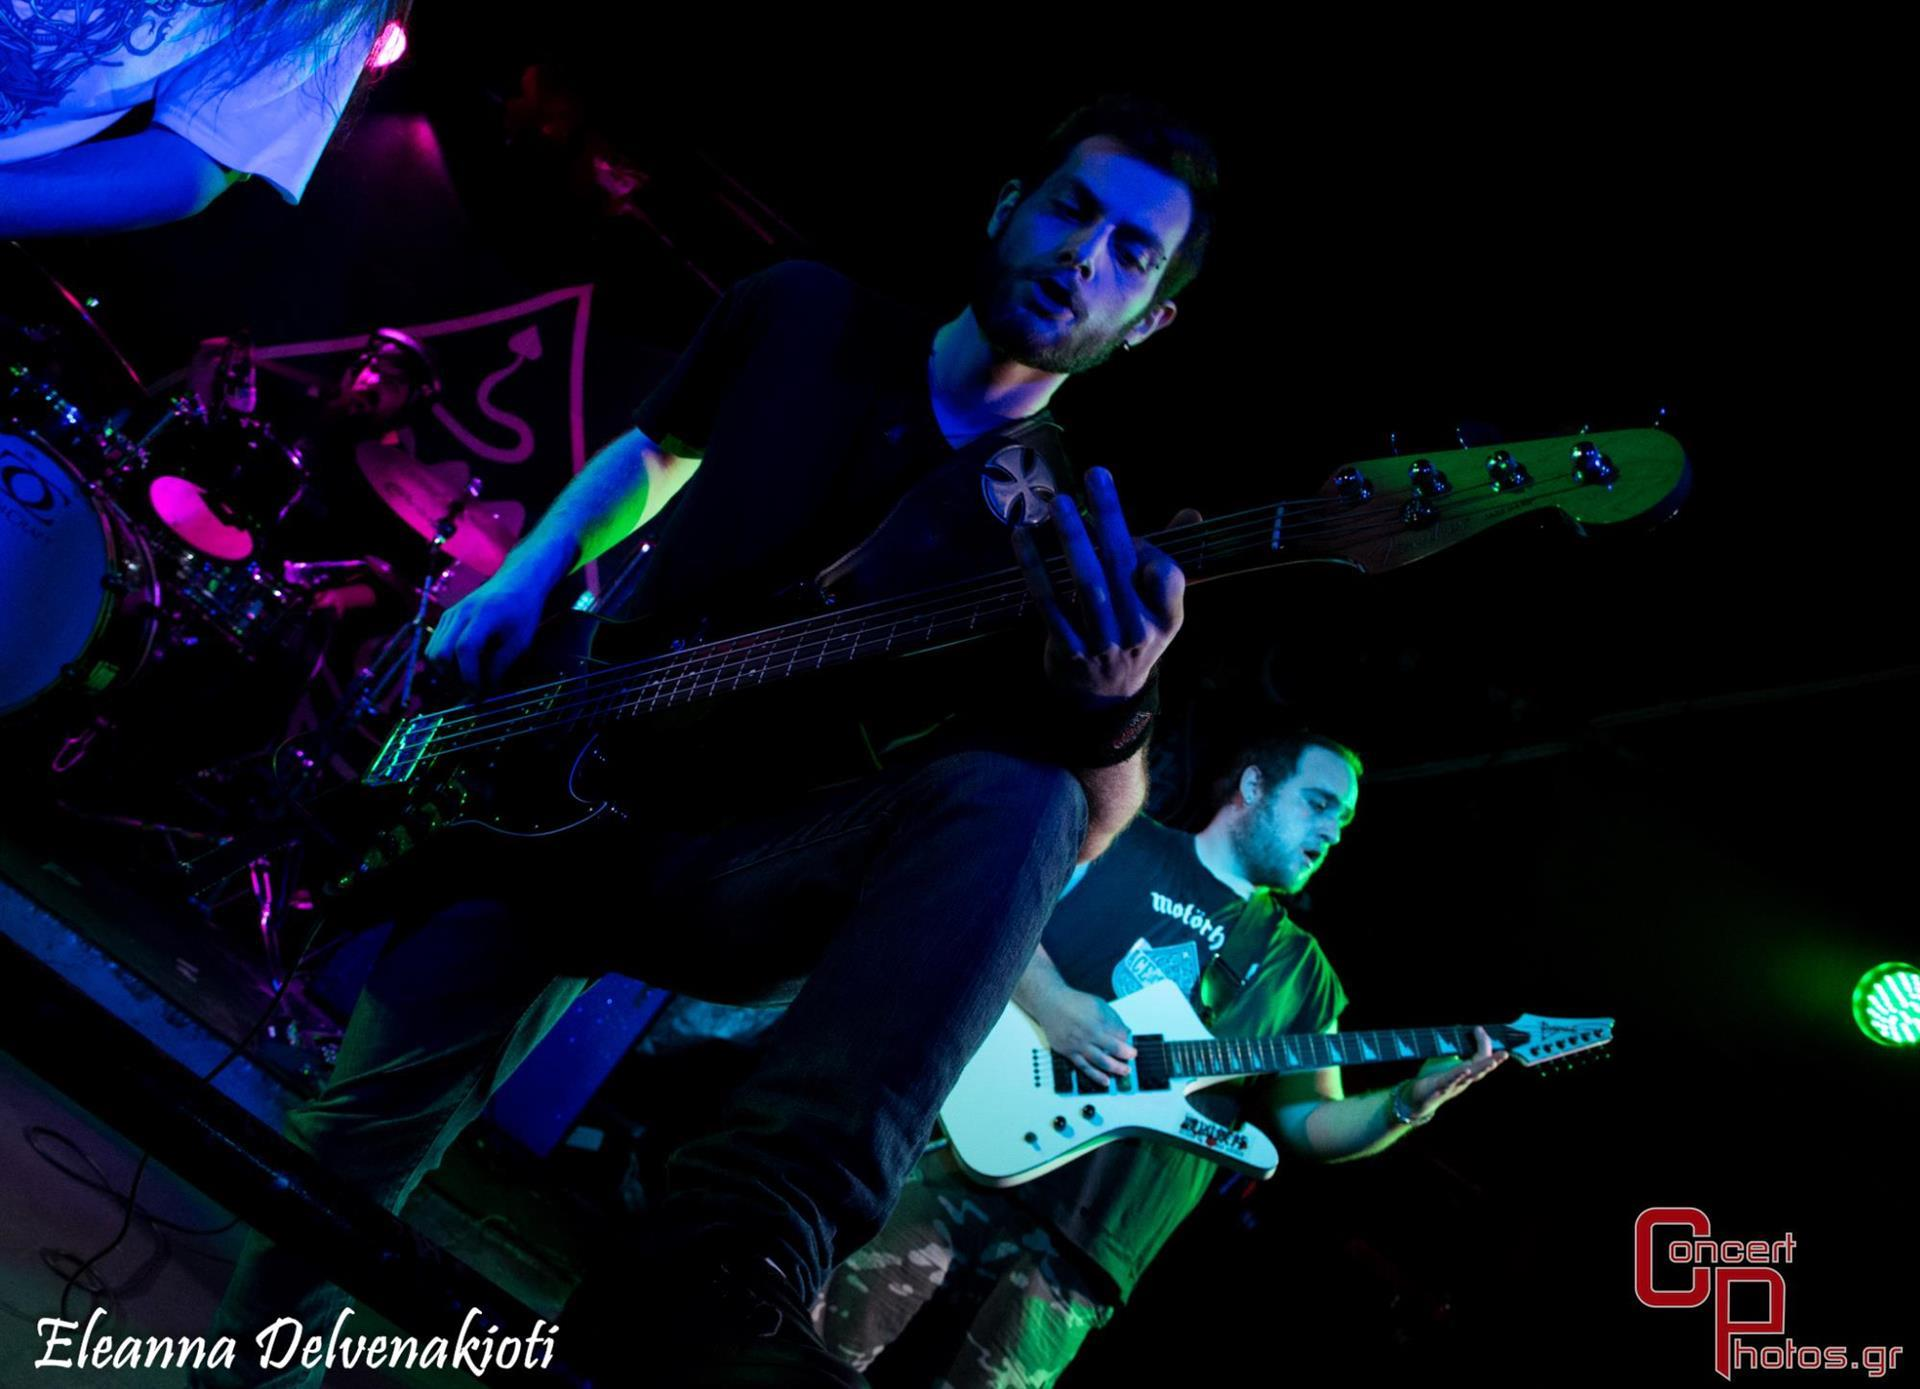 Battle Of The Bands Athens - Leg 4-test photographer:  - Battle Of The Bands-20150208-231855